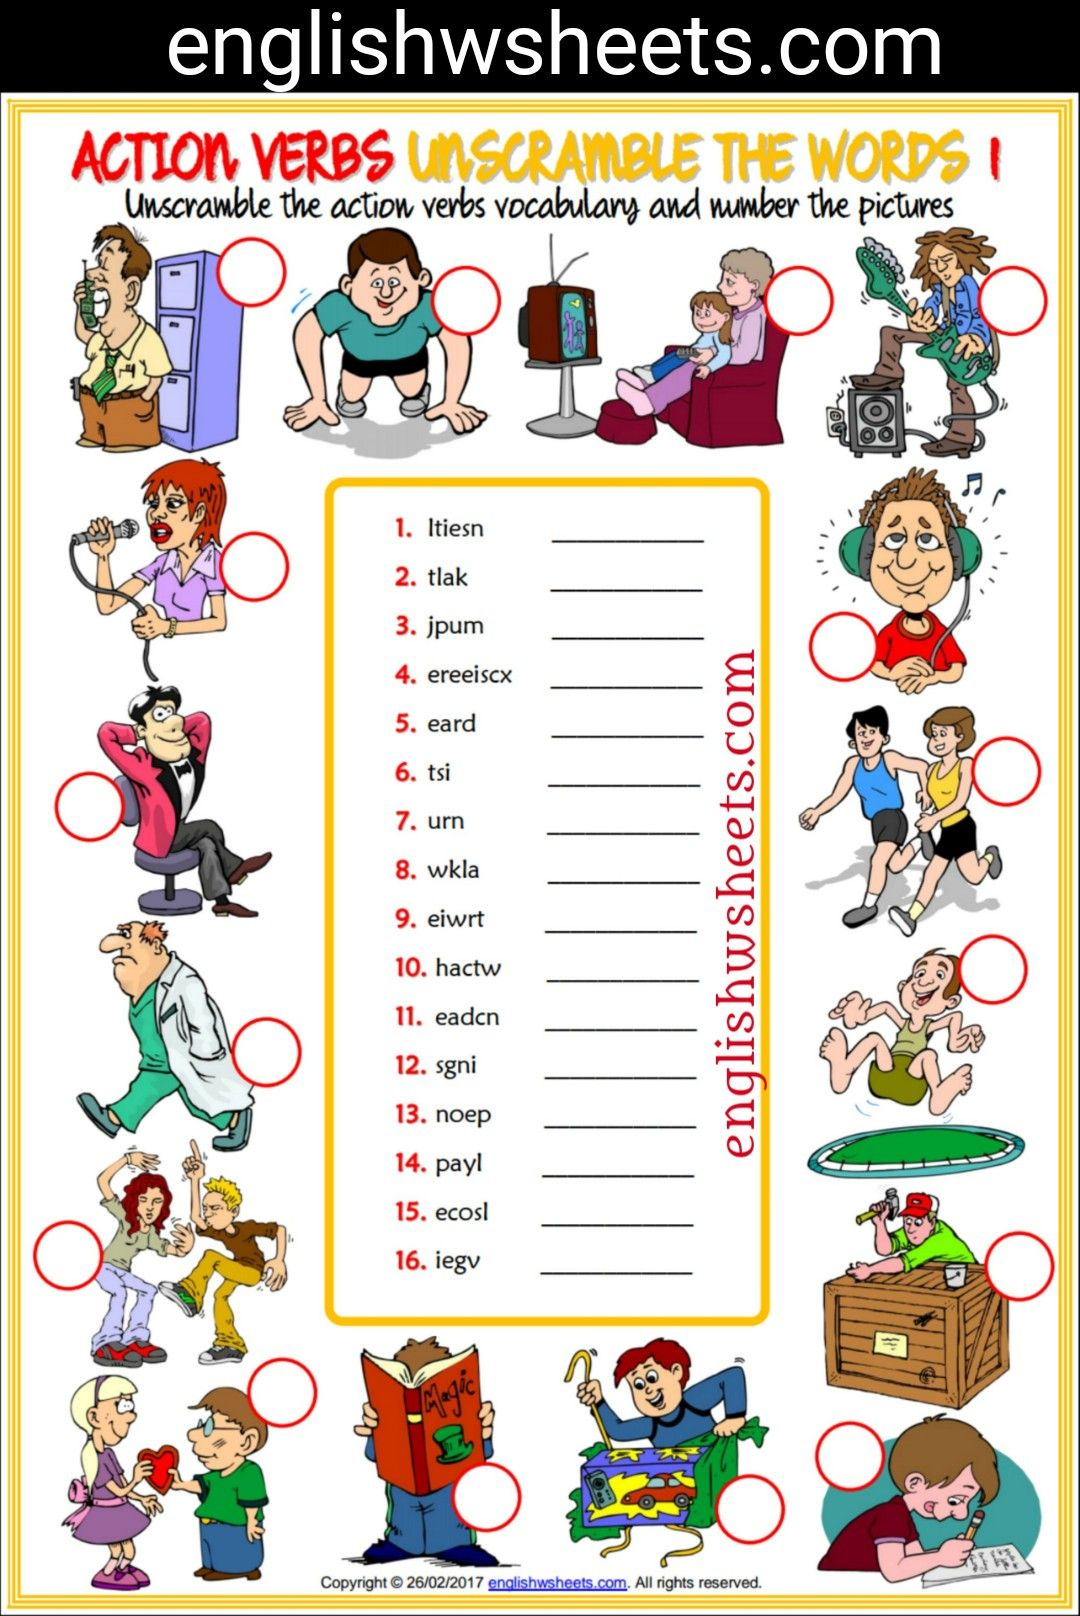 hight resolution of 11 Best Action Verbs Worksheets images on Best Worksheets Collection